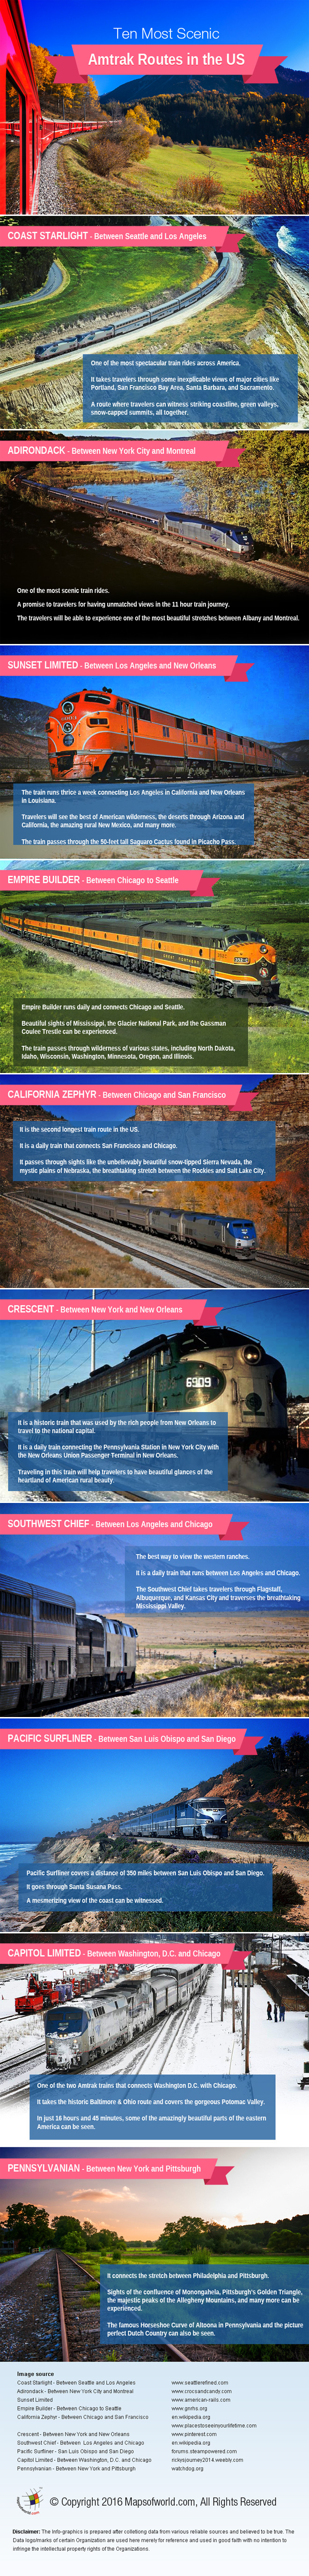 ten-most-scenic-amtrak-routes